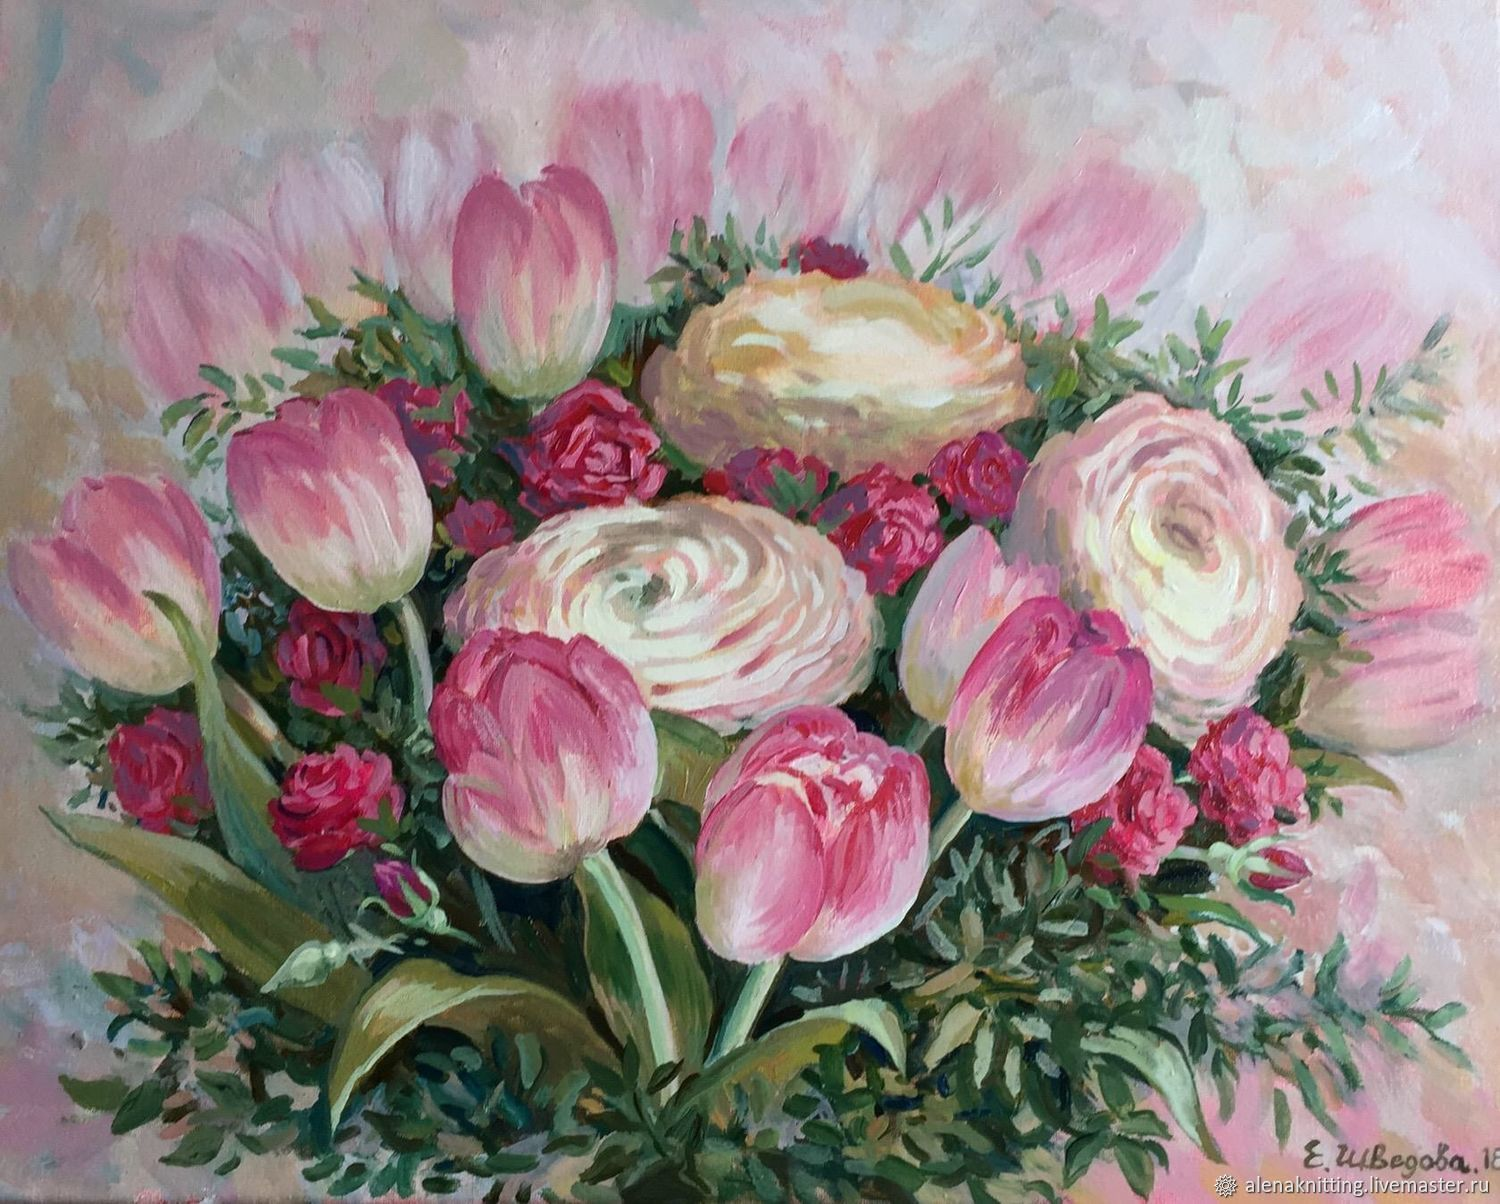 Oil painting 'Delicate bouquet', Pictures, Moscow,  Фото №1